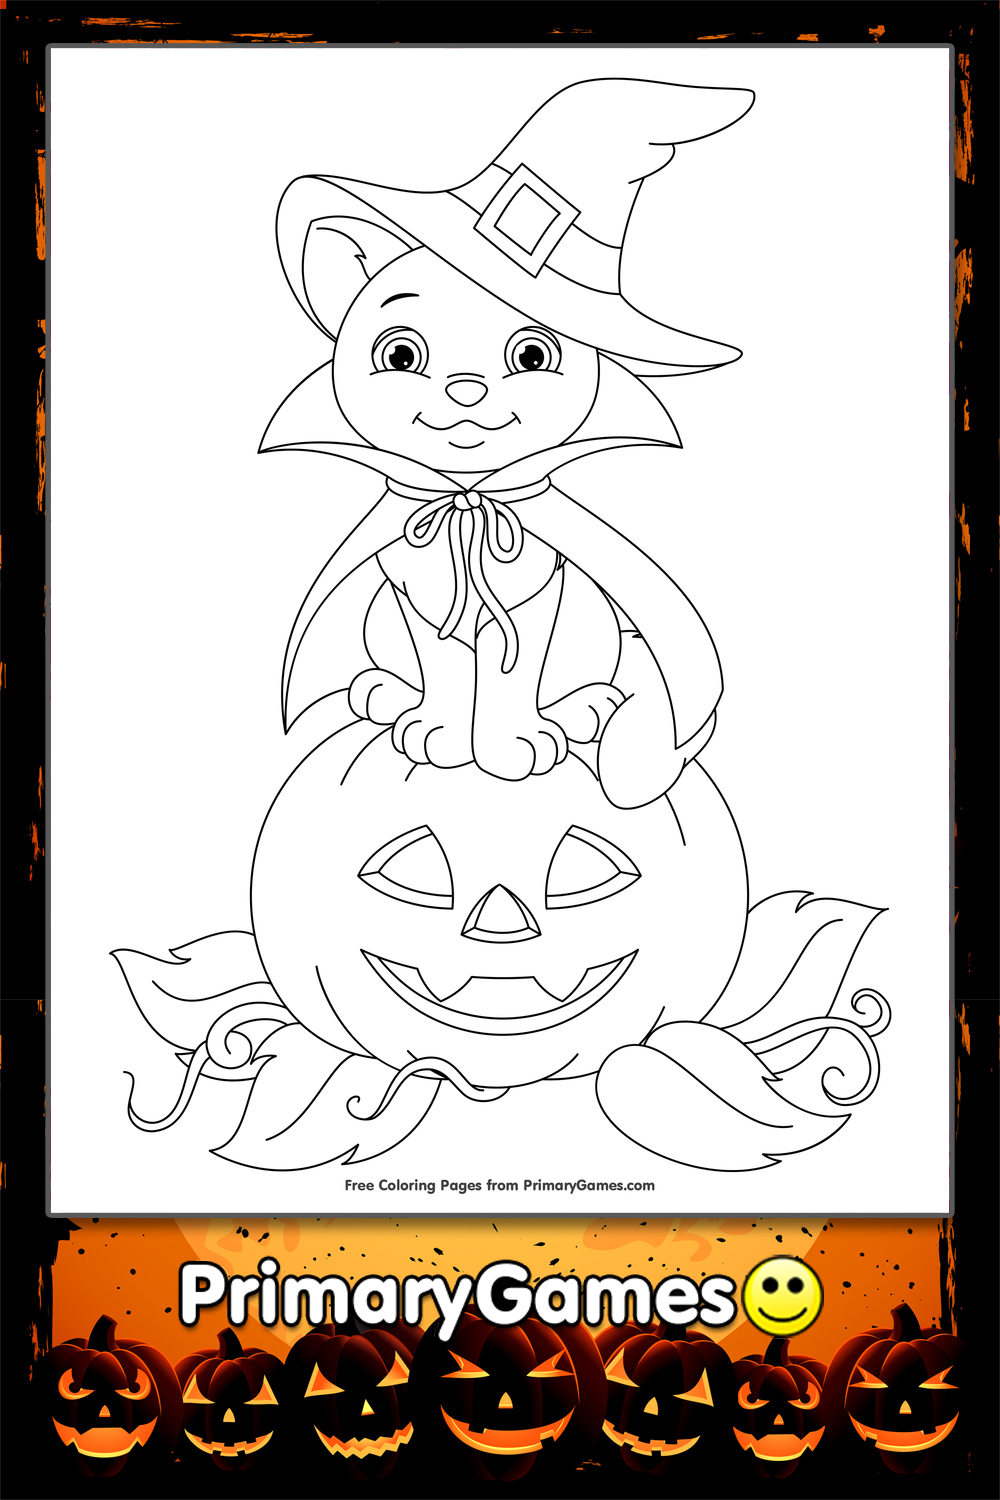 happy 4th birthday coloring pages - photo#23